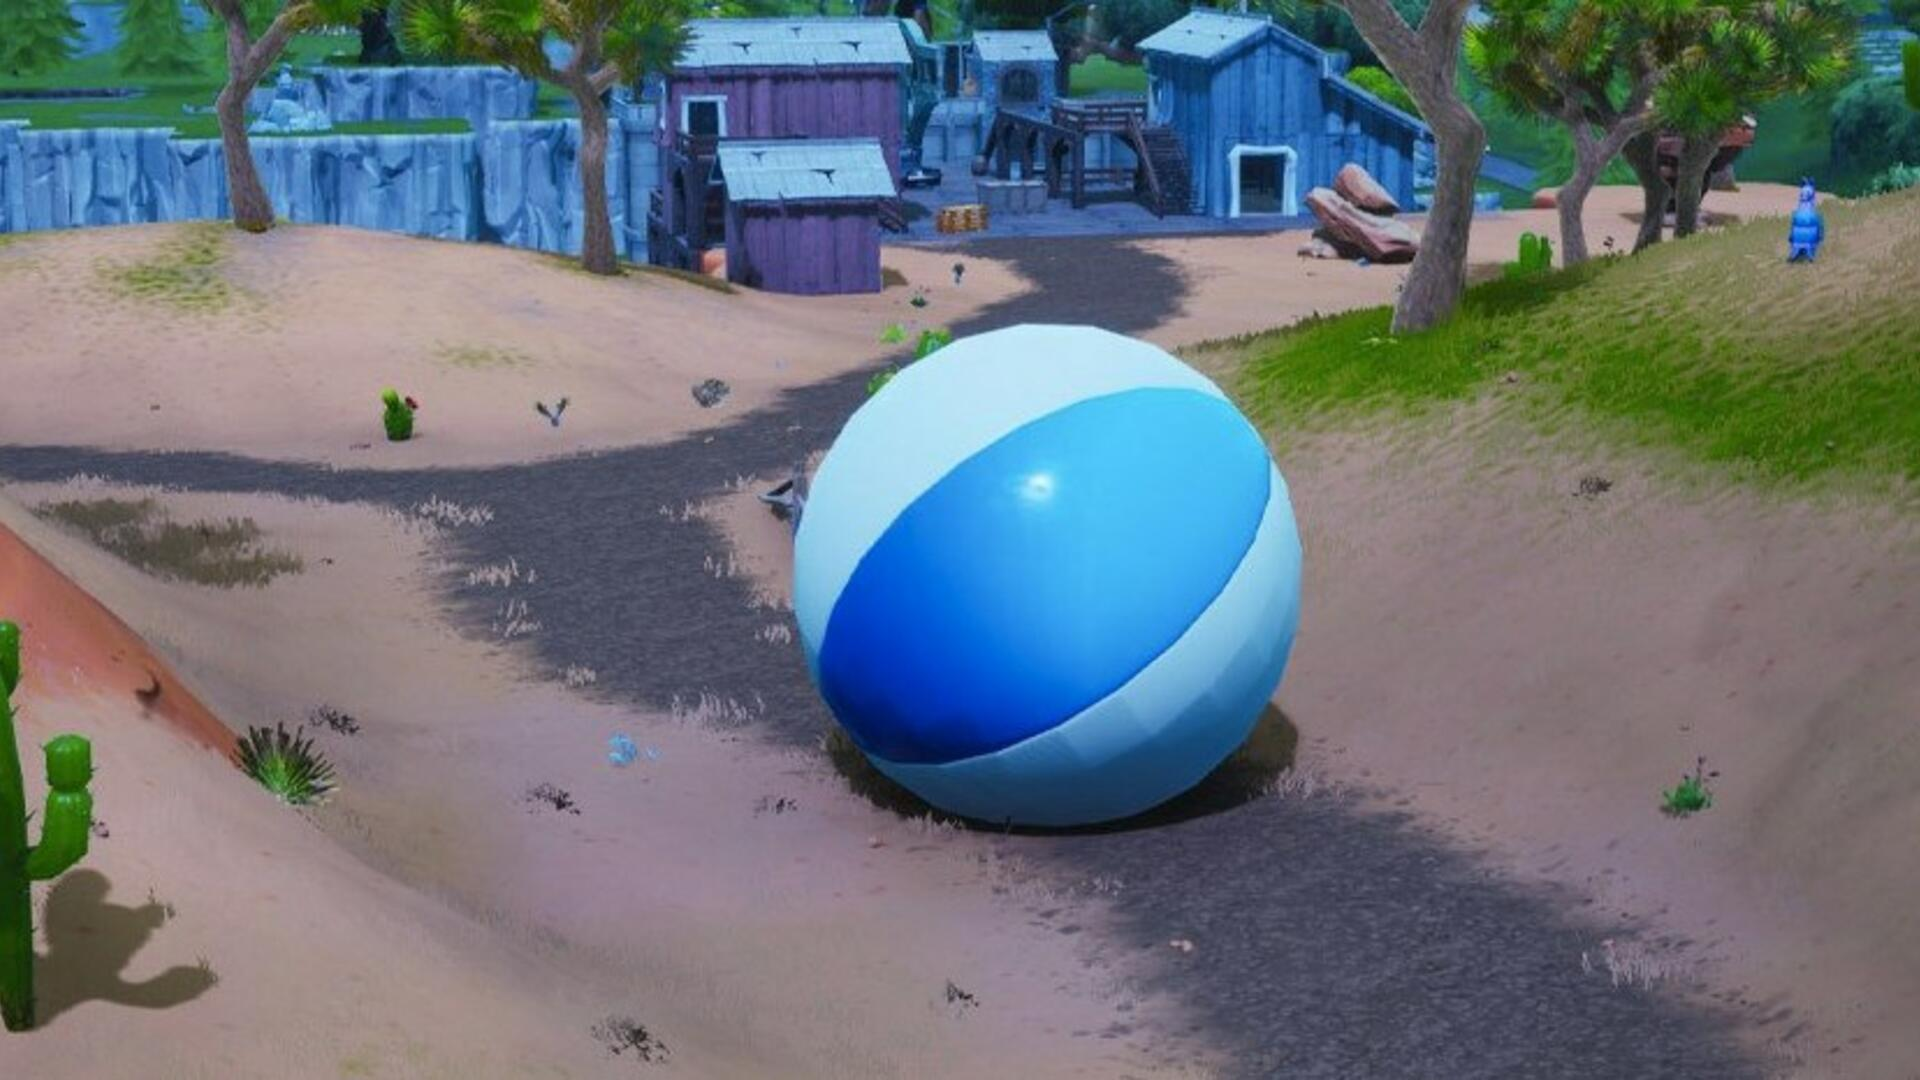 Fortnite Giant Beach Ball Locations - How to Bounce a Giant Beach Ball in Different Matches